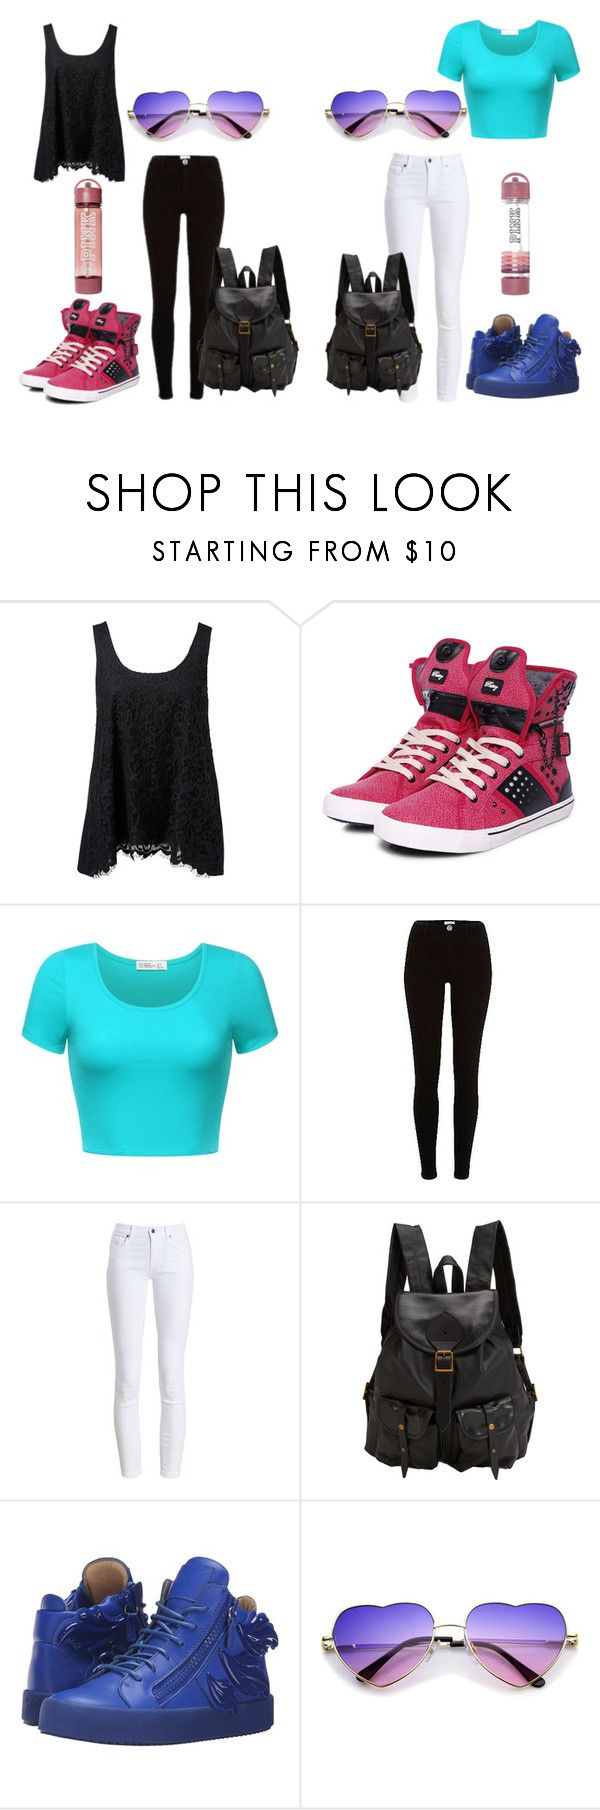 """Camp Besties"" by lollipopwhiskers on Polyvore featuring Forever New, Pastry, River Island, Barbour, Jas M.B., Giuseppe Zanotti, Victoria's Secret, Summer, cute and camp"